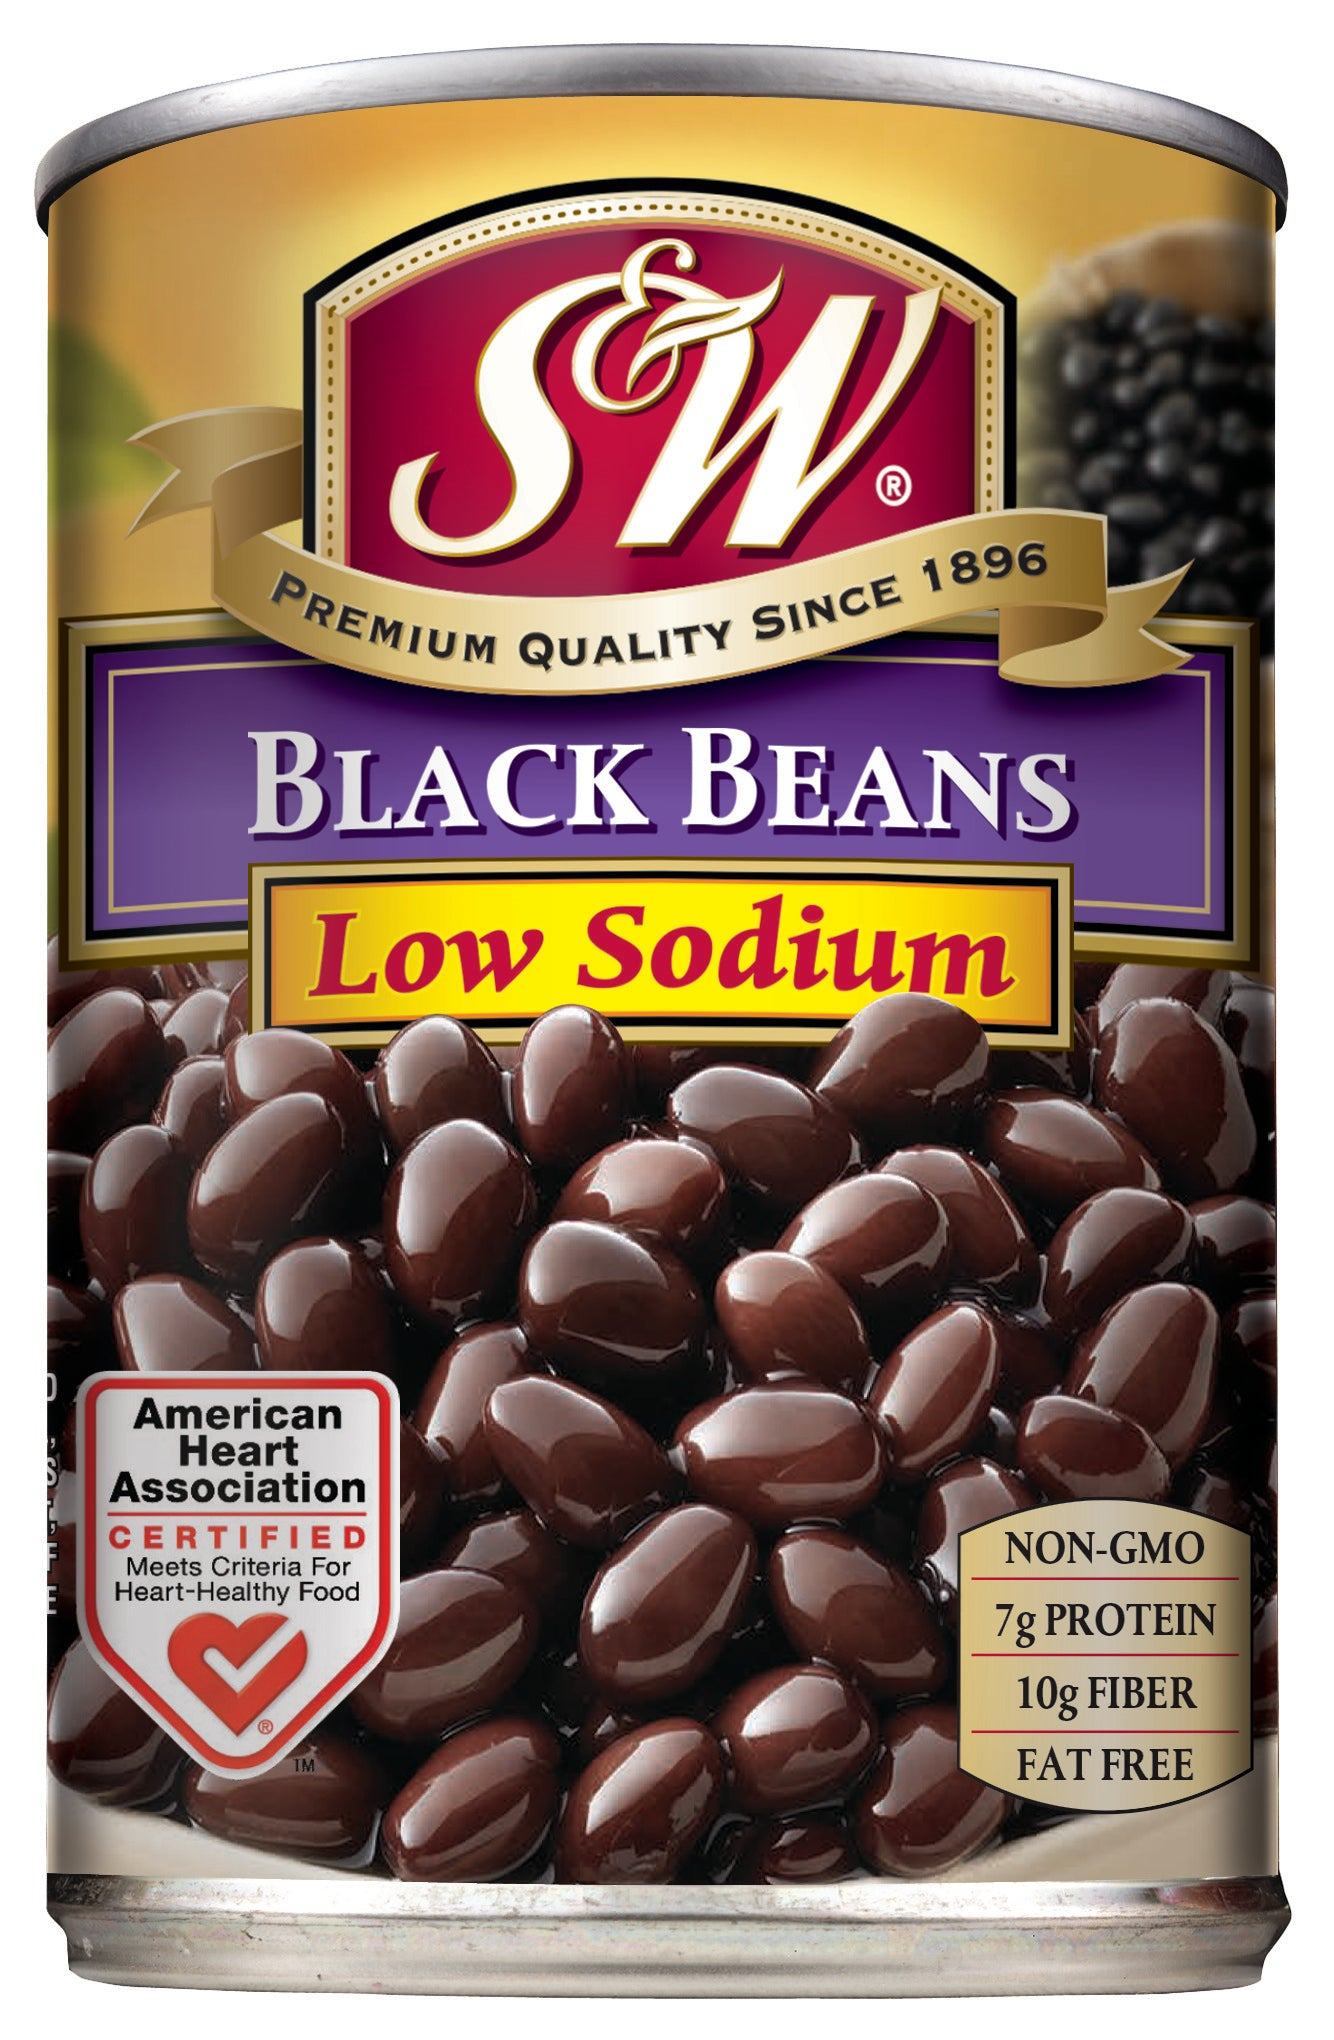 S&W Black Beans Low Sodium, , 15.0 Oz (Pack of 12)